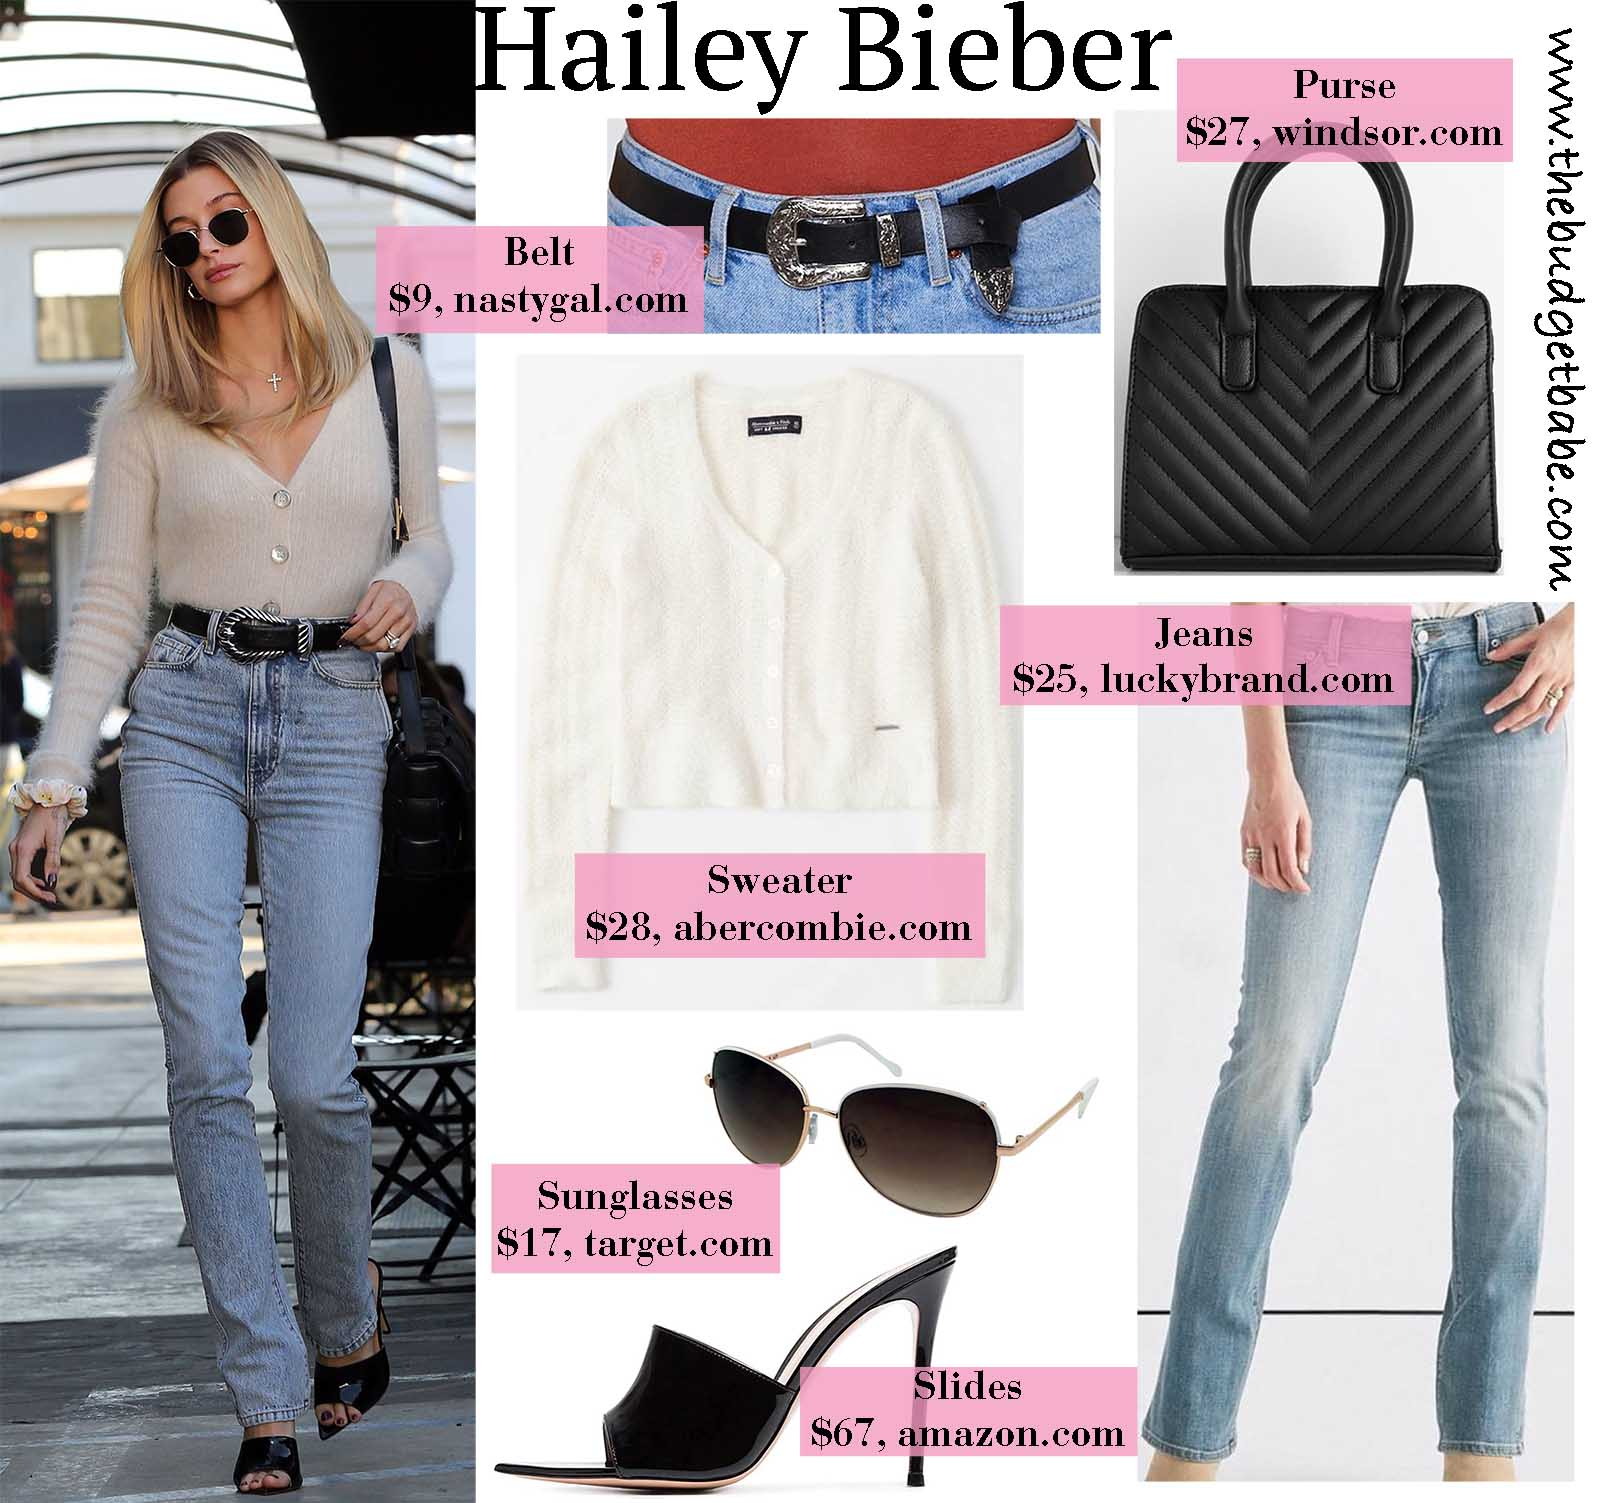 Hailey Bieber works an eyelash sweater and jeans beautifully!